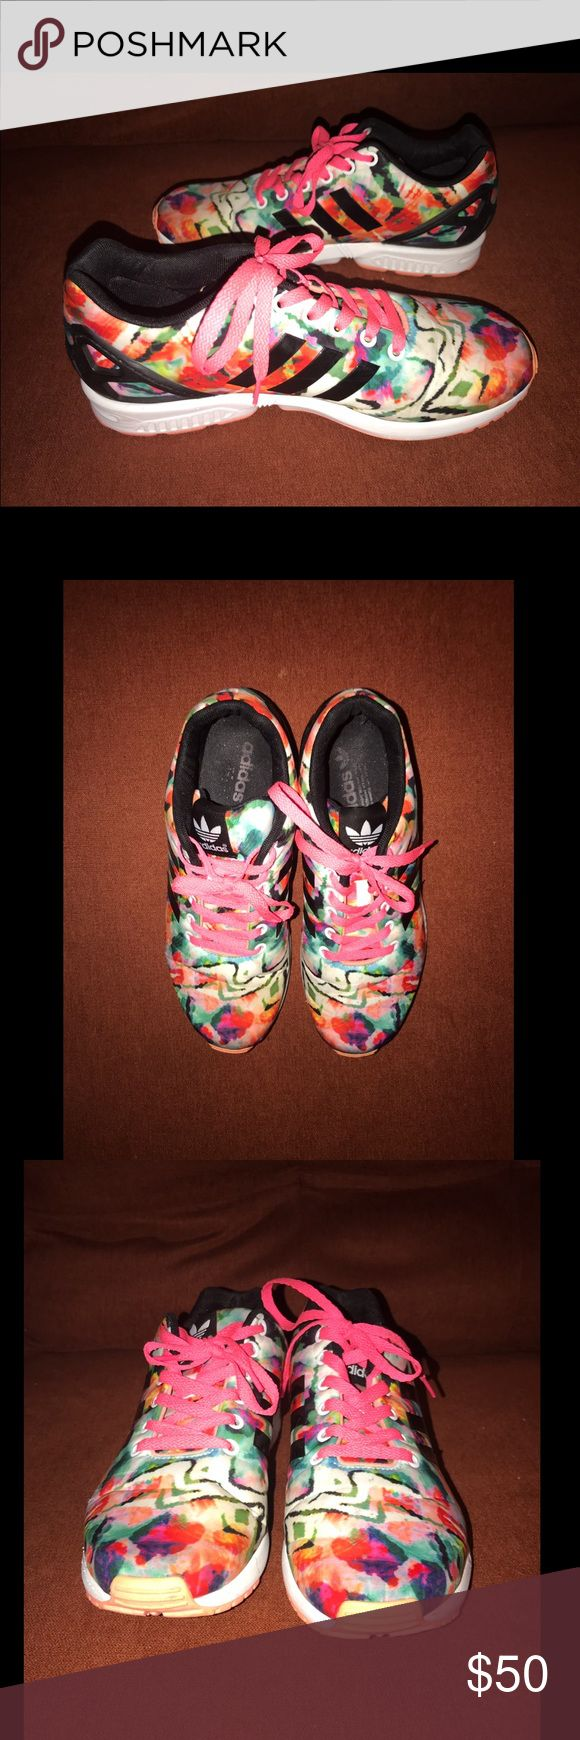 adidas zx flux torsion multicolor 9 Like new with cosmetic blemishes as noted in photographs.  Size 9.  Limited edition print. adidas Shoes Athletic Shoes